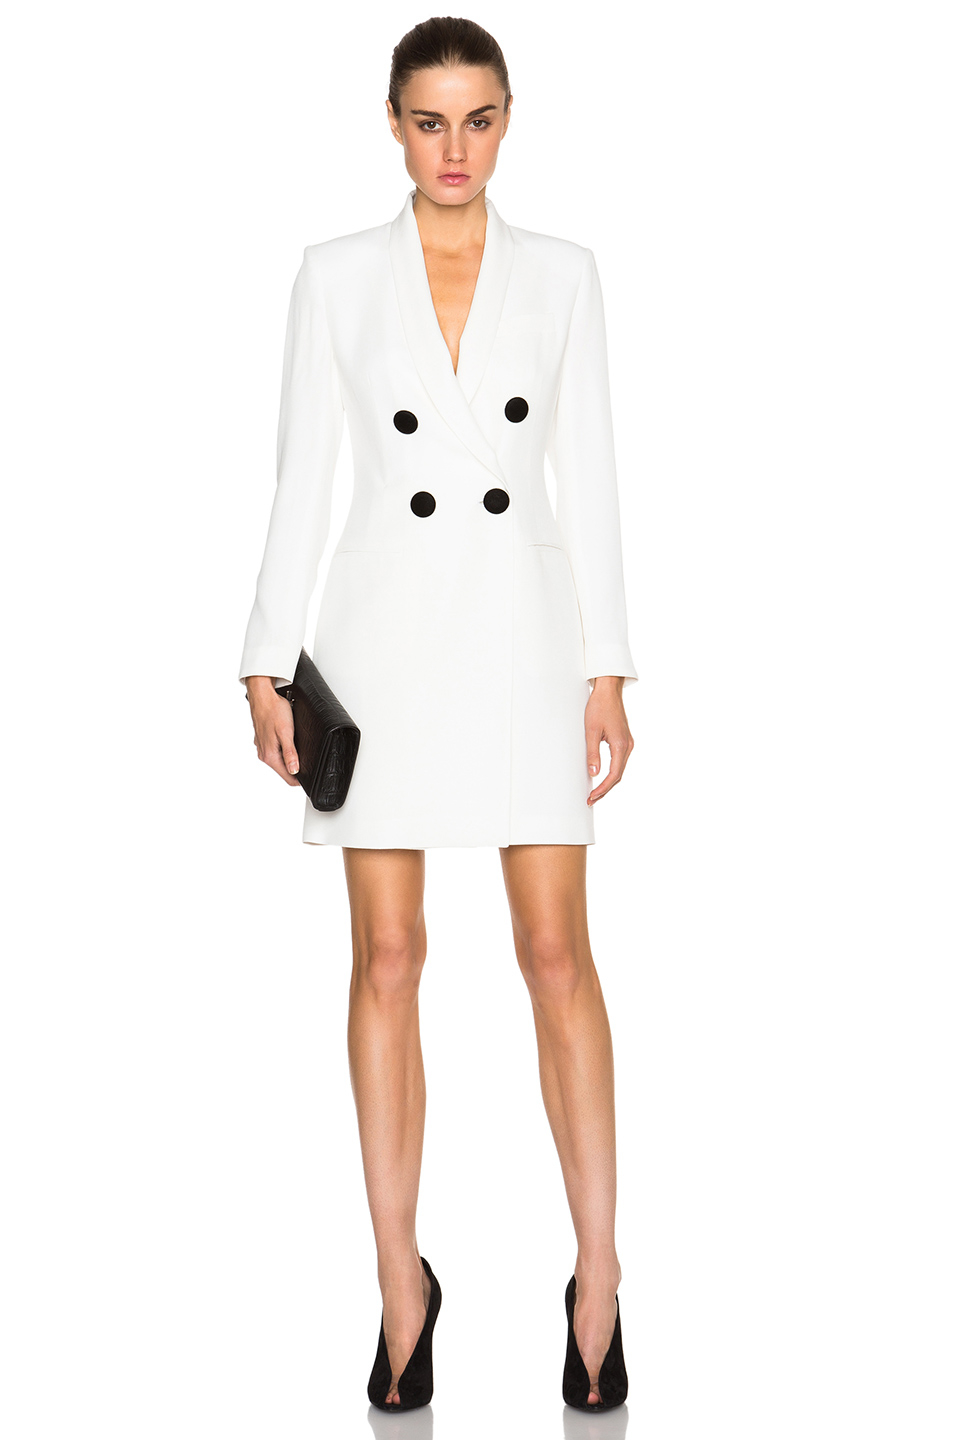 Adam lippes Double Breasted Blazer Mini Dress in White | Lyst